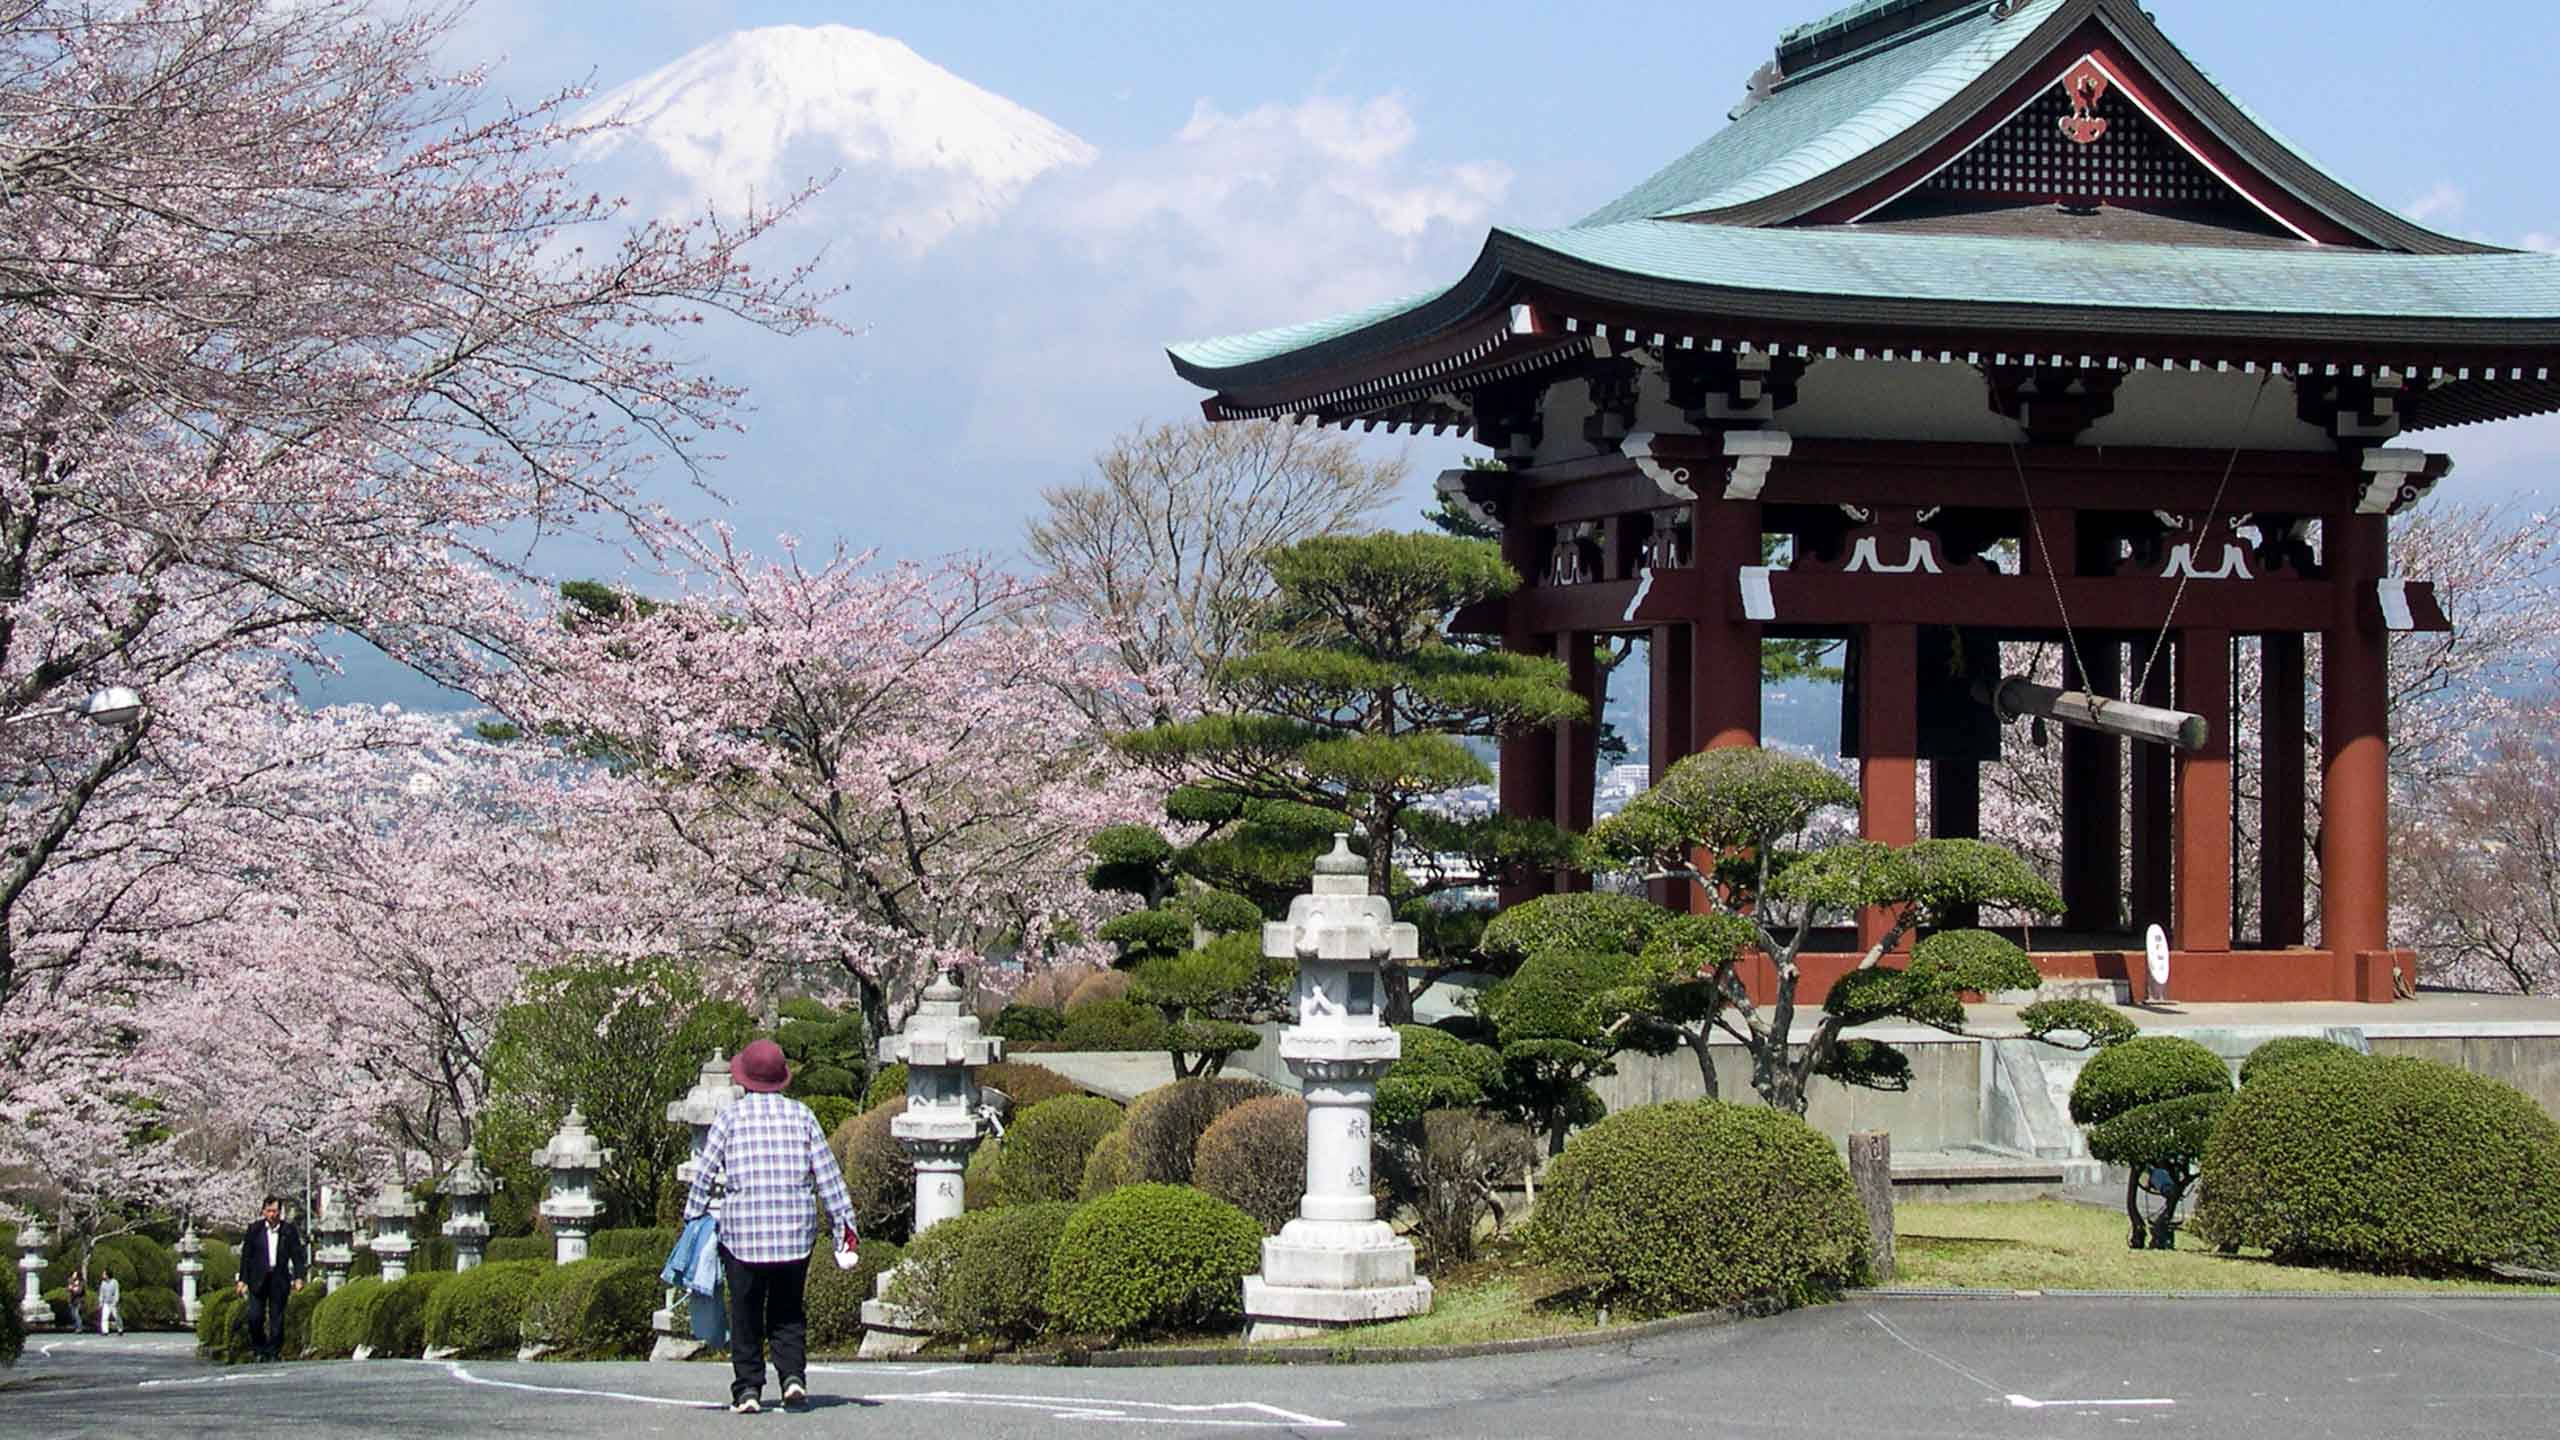 Japanese temple and cherry blossoms